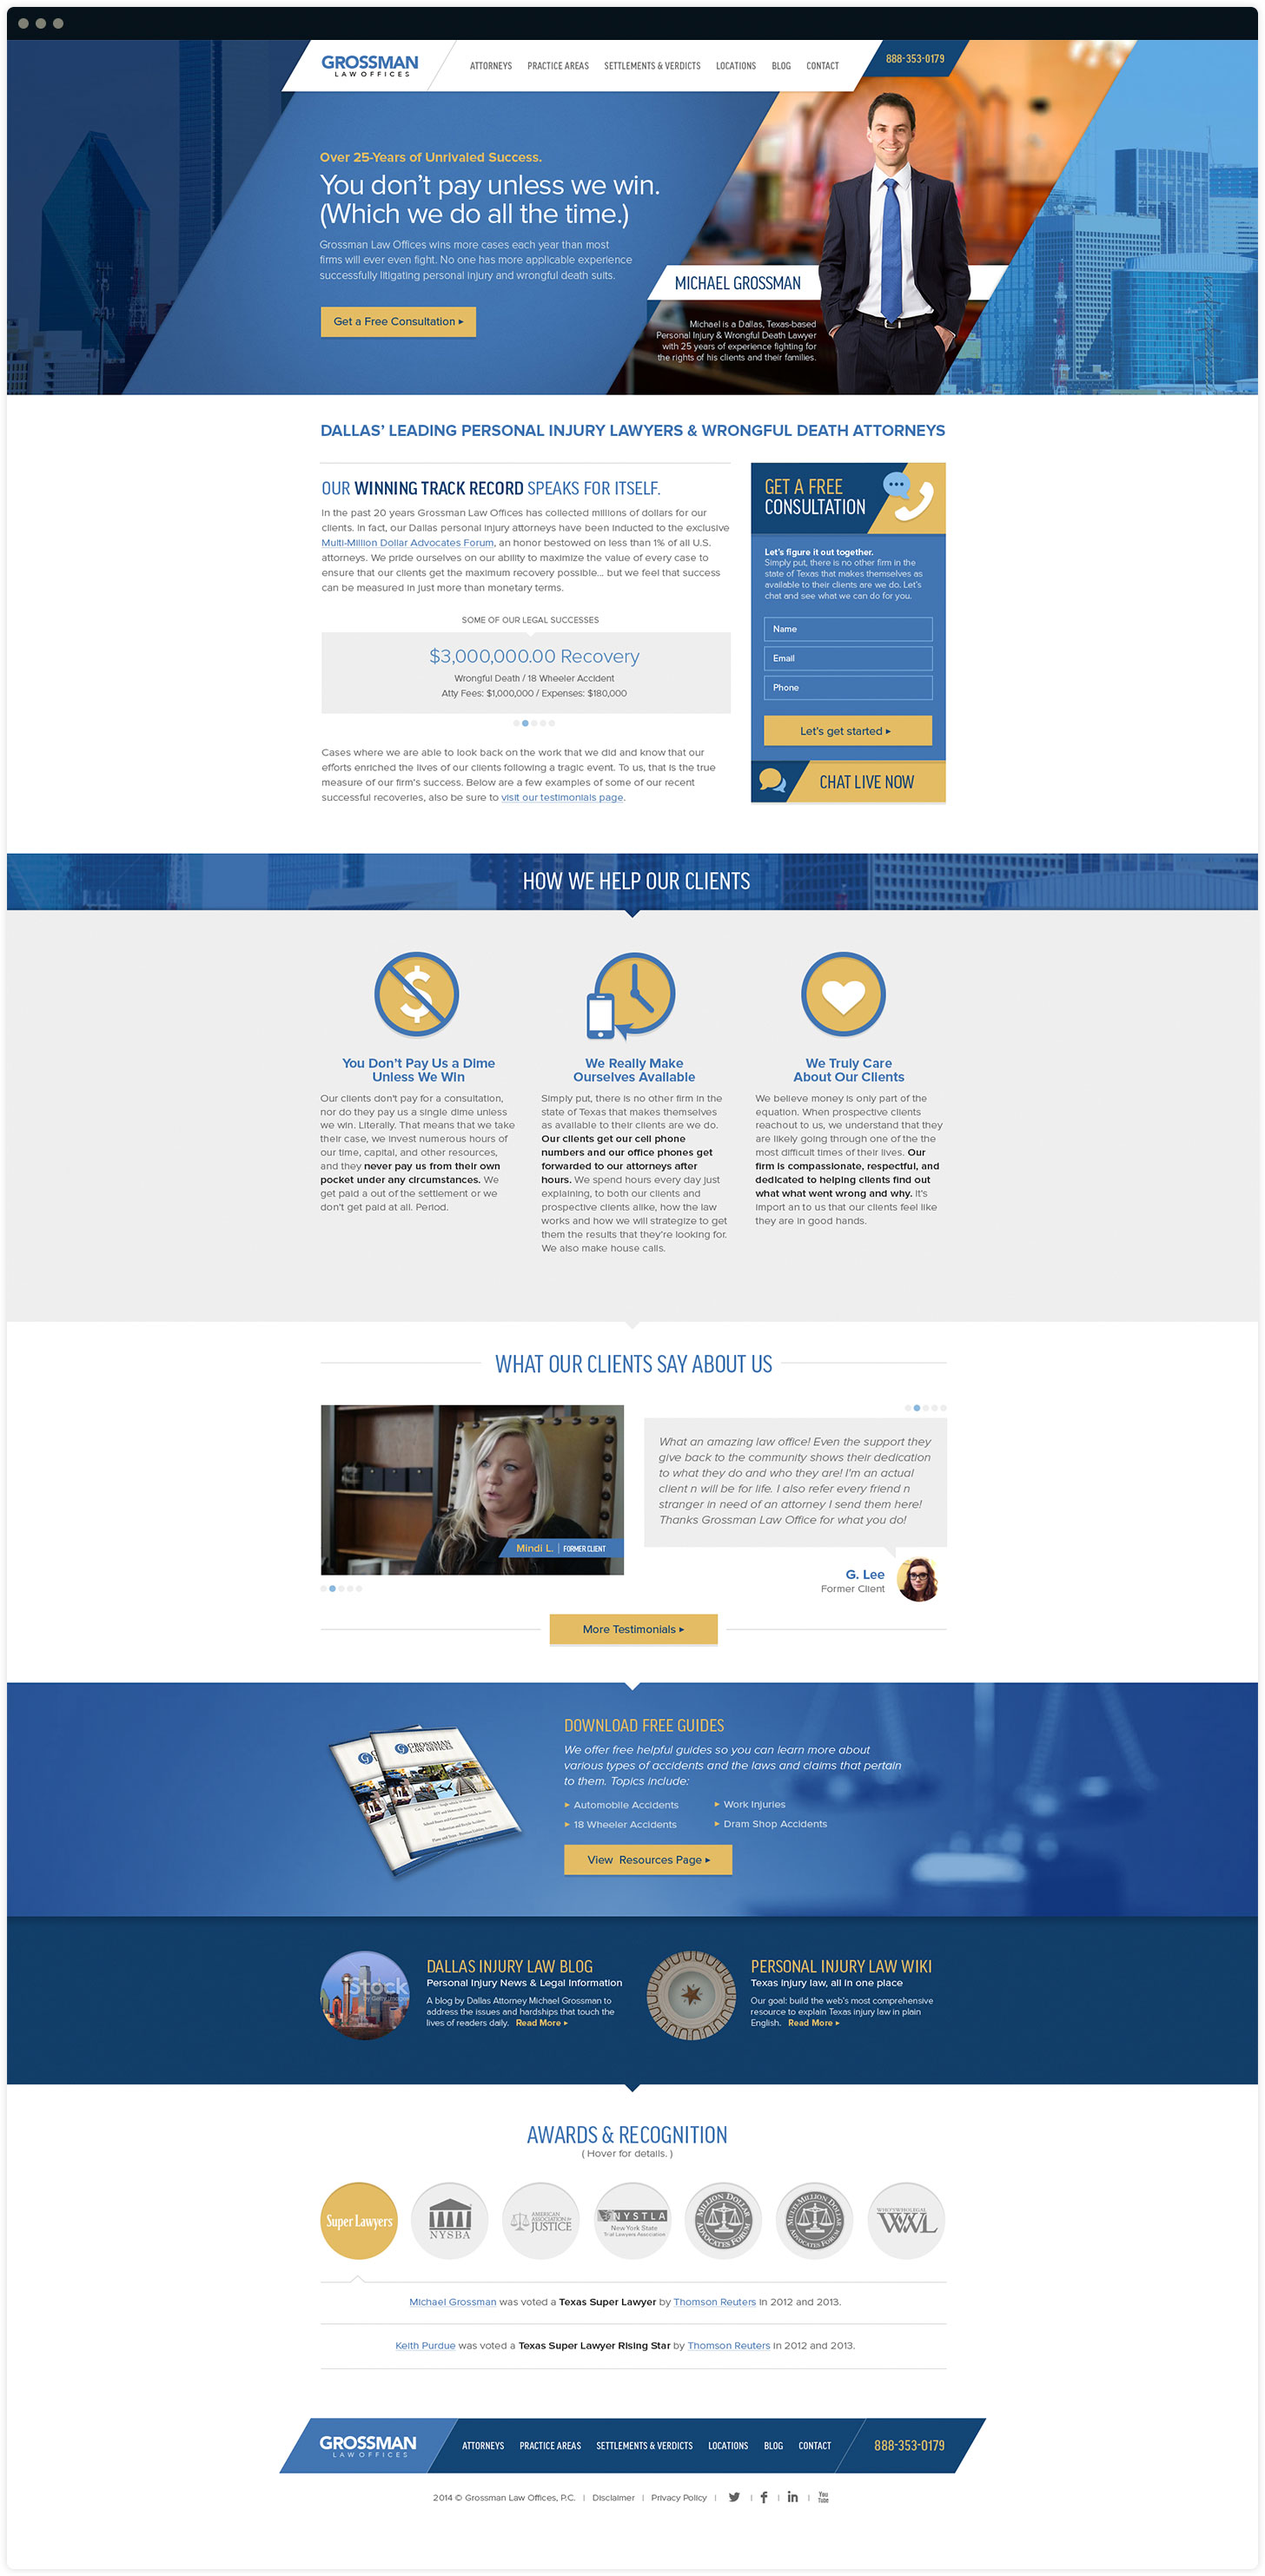 Grossman Law Offices Website Design by Salted Stone